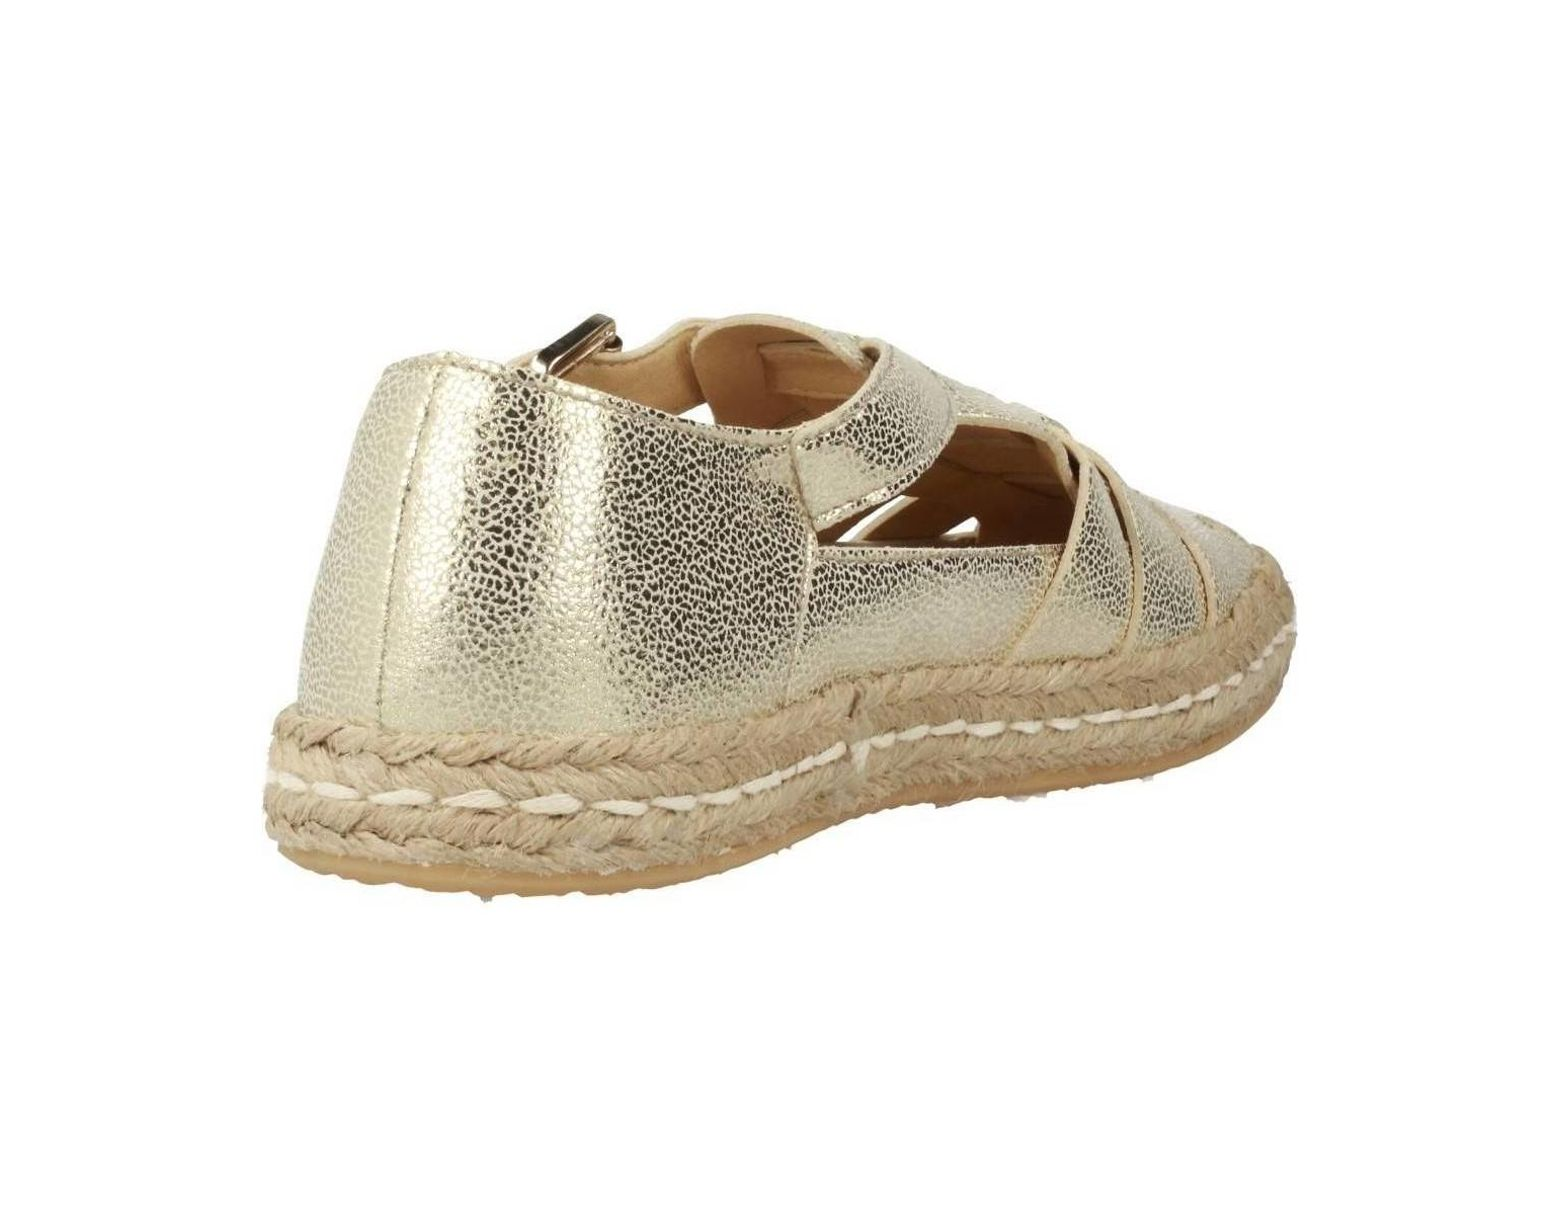 38932302870be0 Geox D Modesty Women's Espadrilles / Casual Shoes In Gold in Metallic -  Save 28% - Lyst